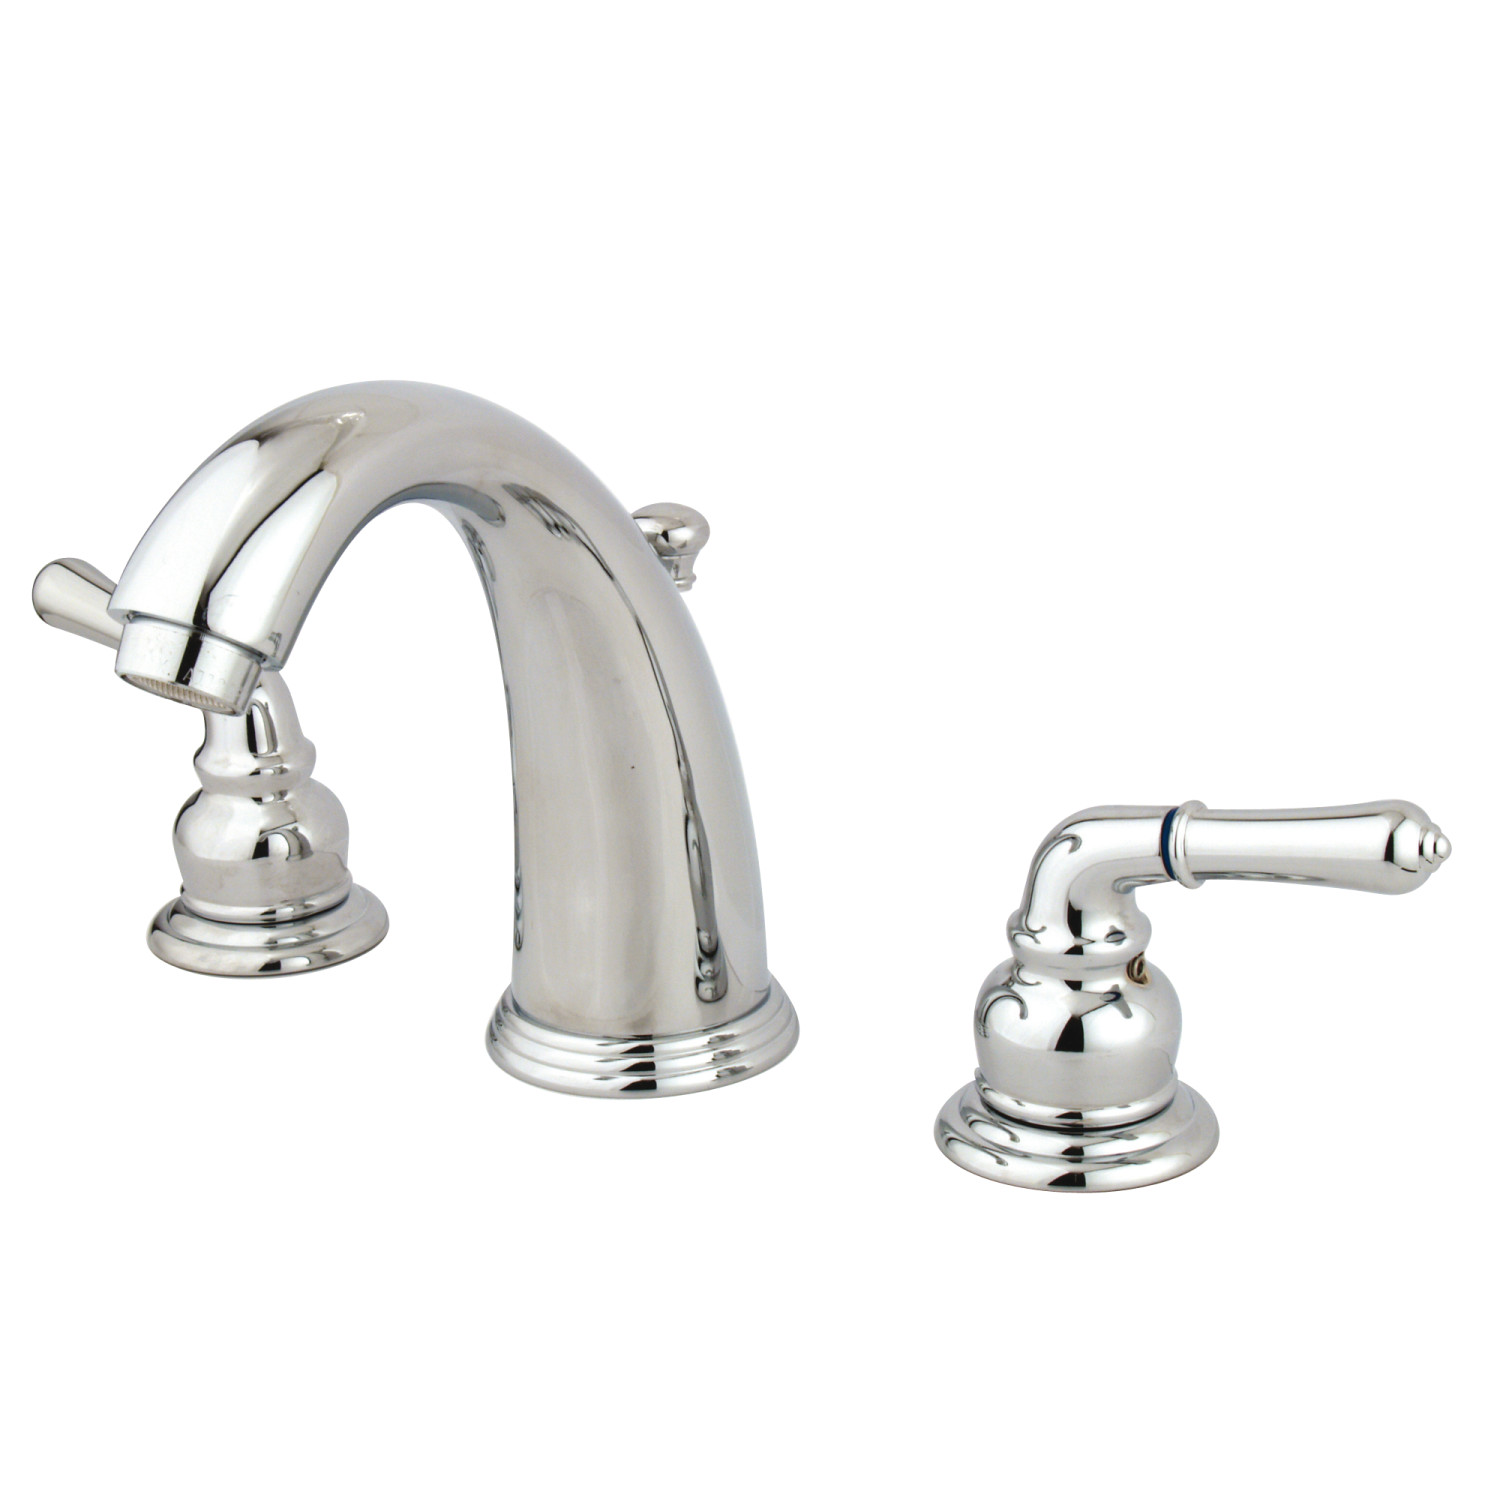 Traditional Two-Handle 3-Hole Deck Mounted Widespread Bathroom Faucet Plastic Pop-Up in Polished Chrome with 5 Finish Options